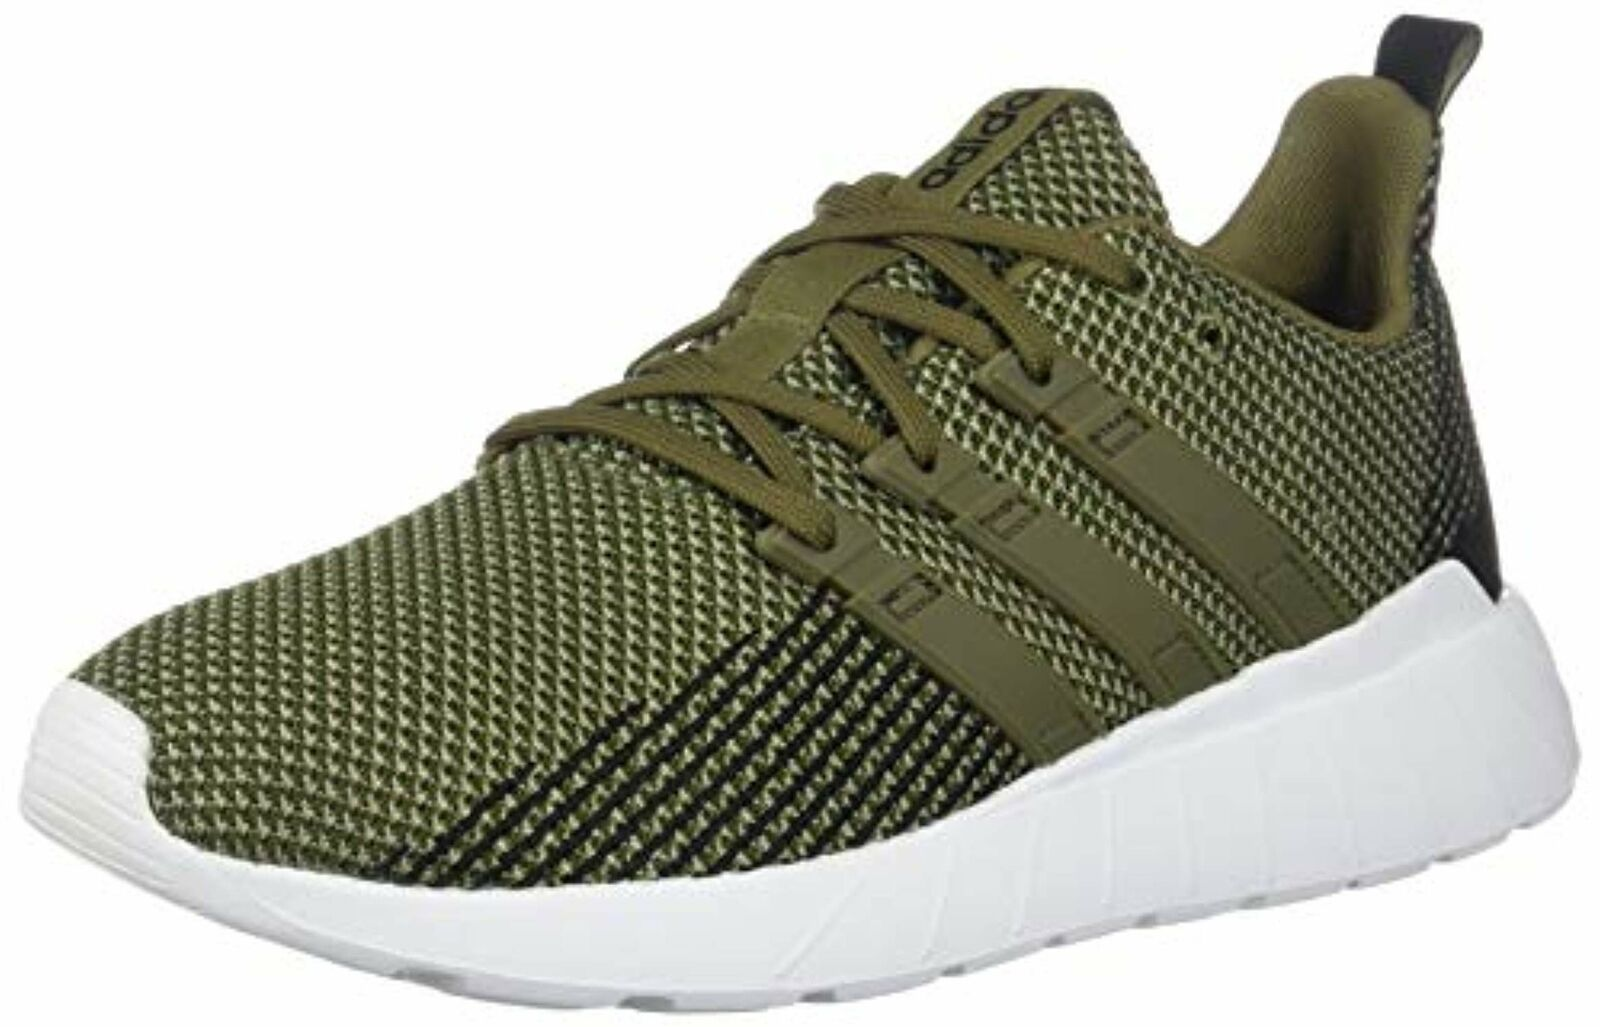 Hommes, S Adidas Originals LA tissage Cargo Vert Baskets